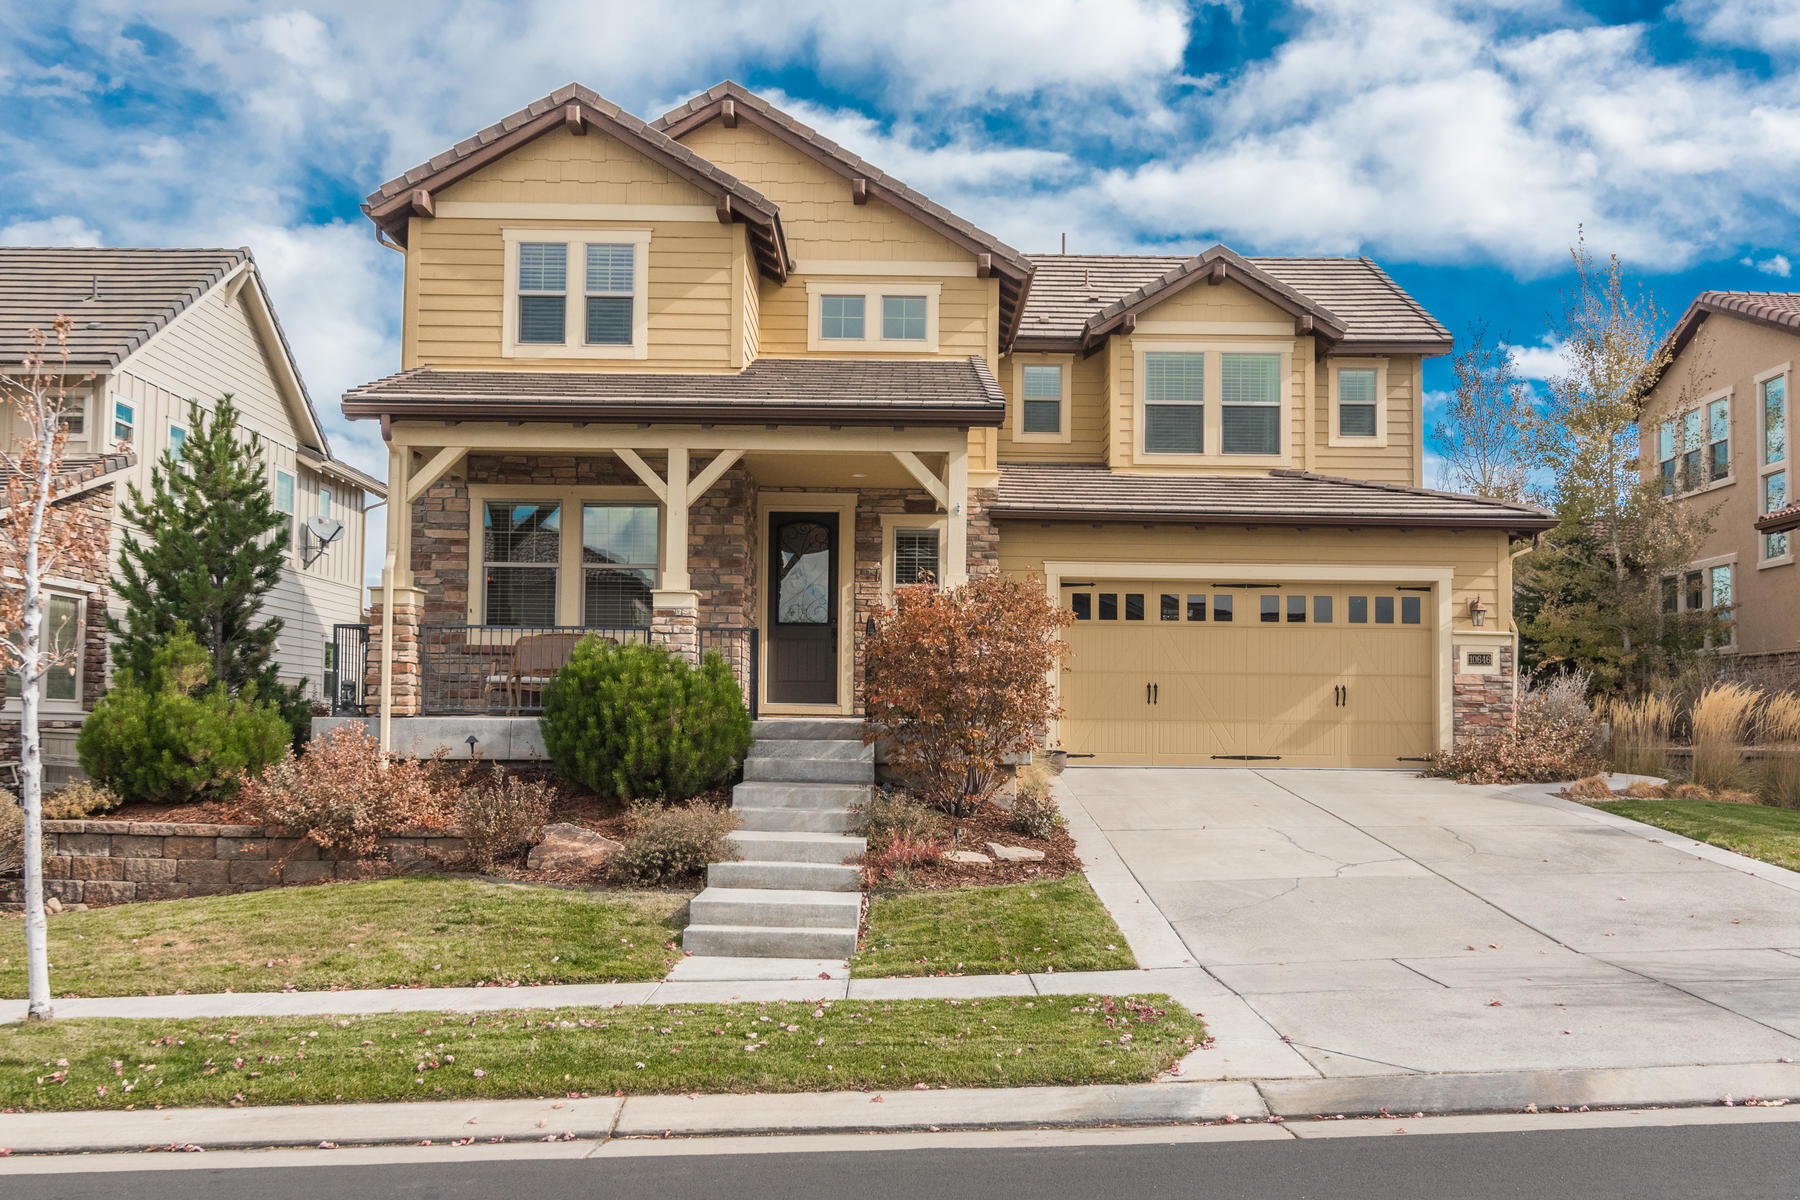 Single Family Homes for Active at You will feel right at home in this classic 2 story built by Shea Homes. 10646 Sundial Rim Rd Highlands Ranch, Colorado 80129 United States